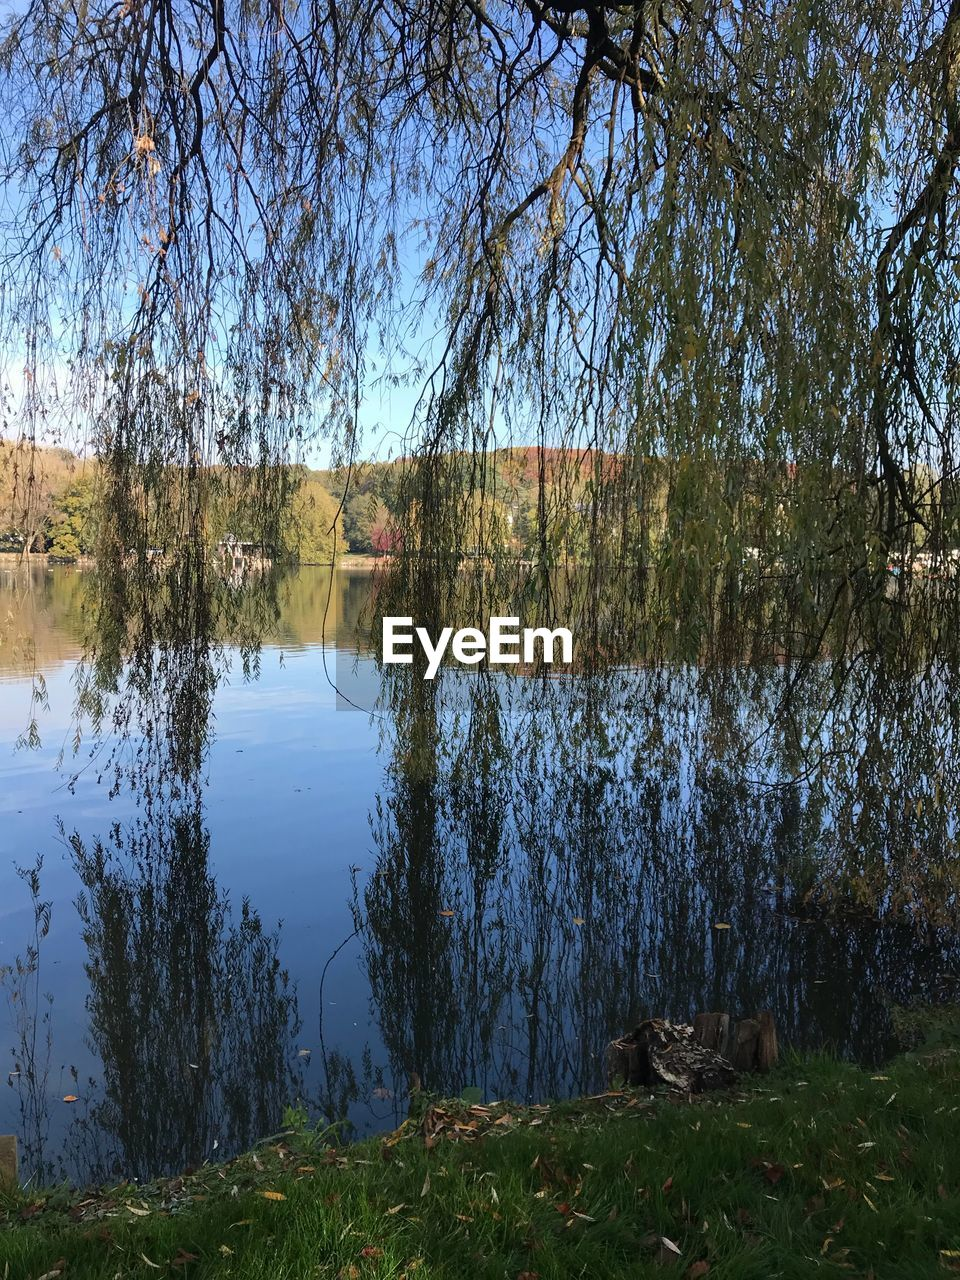 water, plant, reflection, tree, tranquility, lake, tranquil scene, scenics - nature, no people, beauty in nature, nature, growth, day, sky, non-urban scene, forest, land, landscape, lakeshore, outdoors